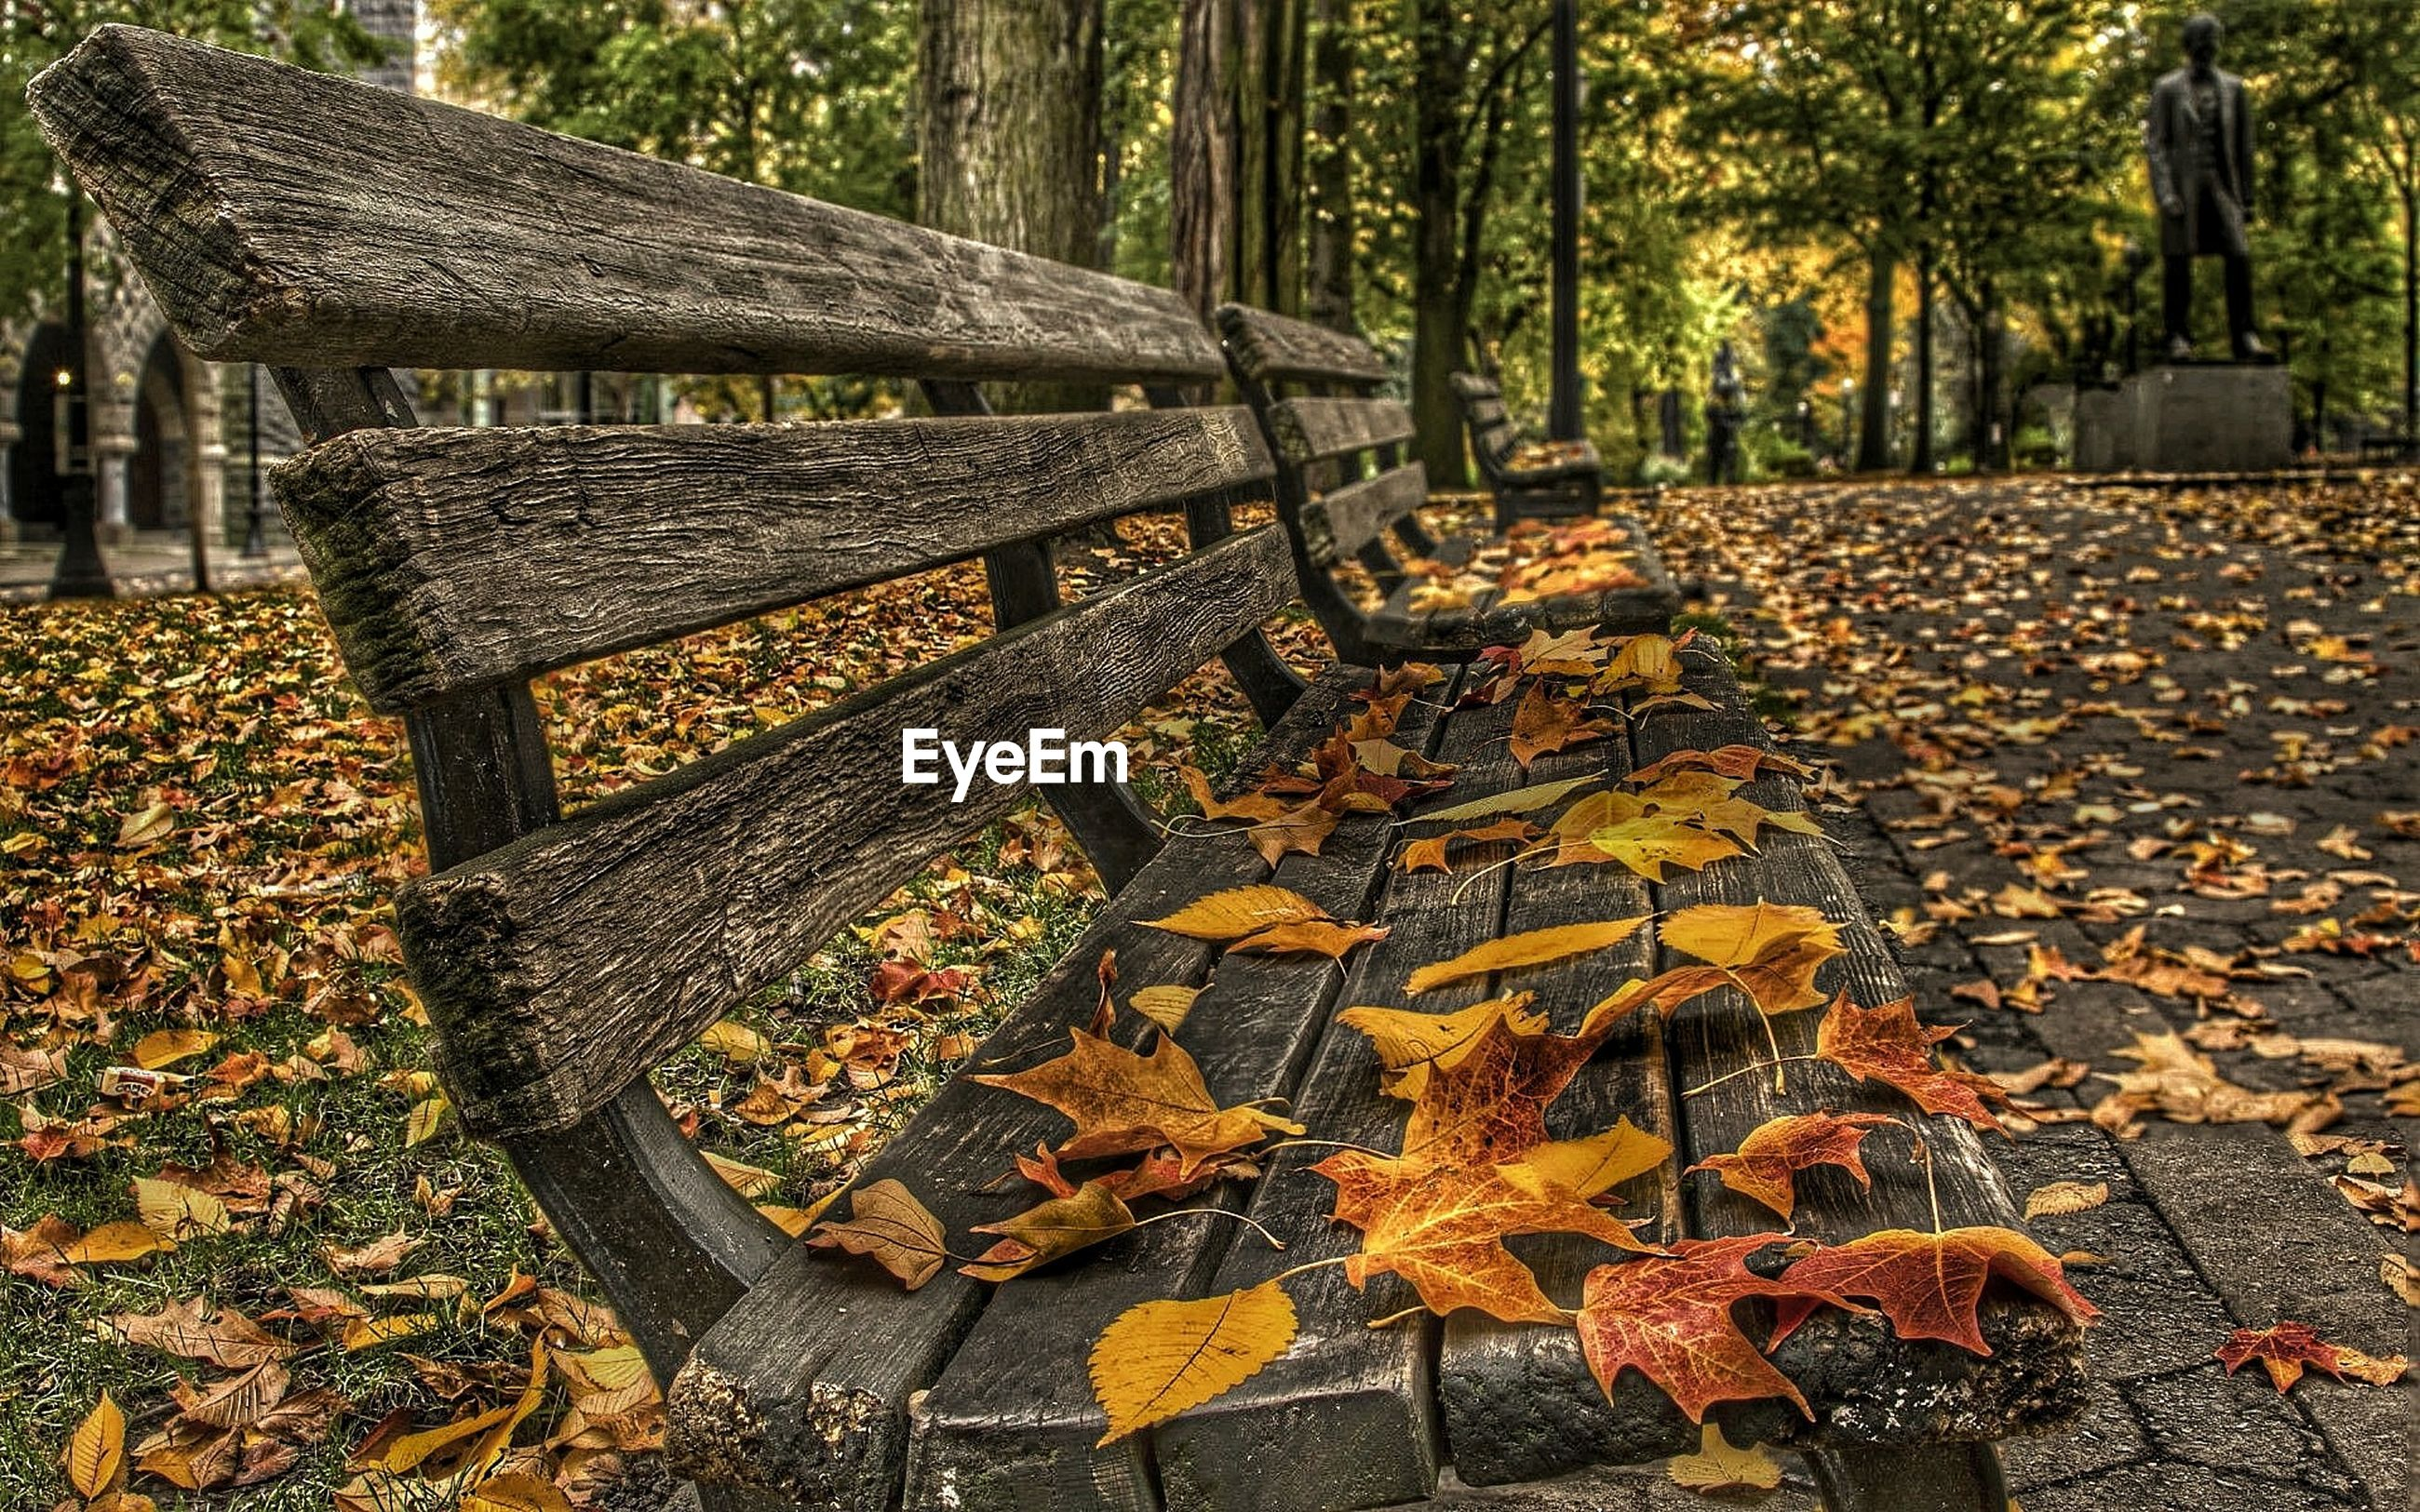 autumn, change, leaf, tree, season, dry, fallen, built structure, leaves, nature, day, falling, park - man made space, building exterior, outdoors, architecture, growth, fall, yellow, no people